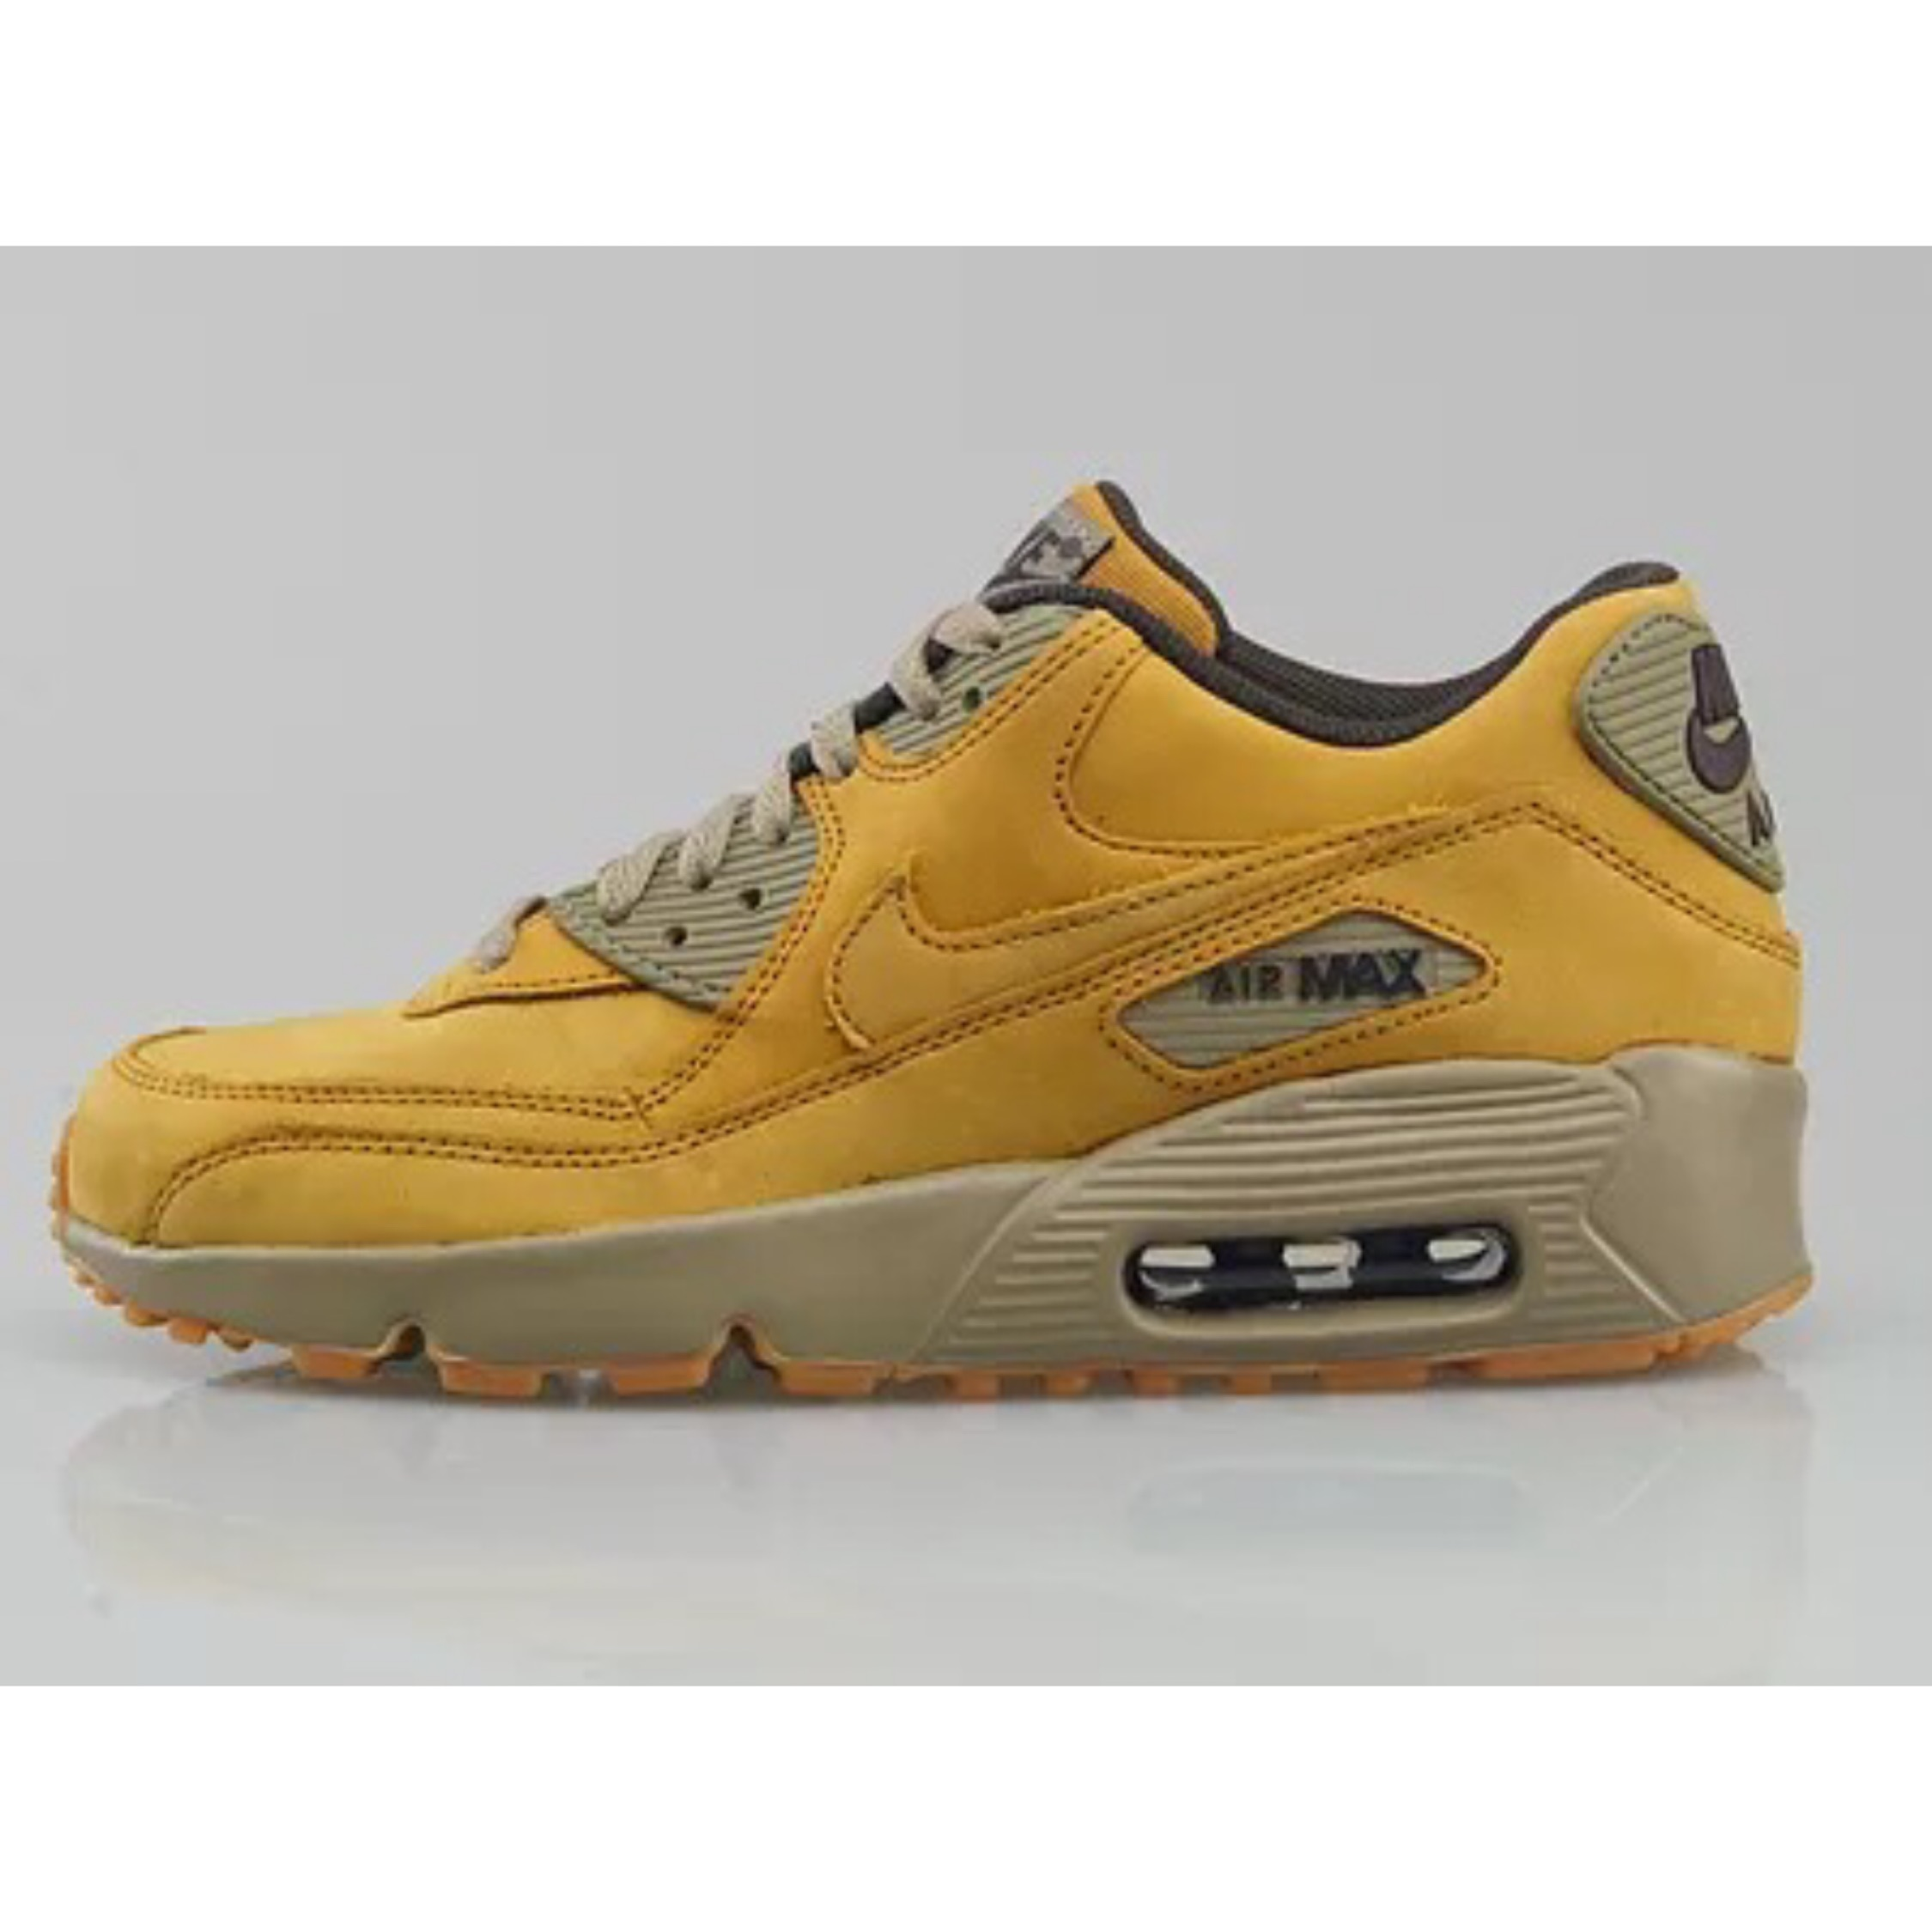 2air max 90 winter